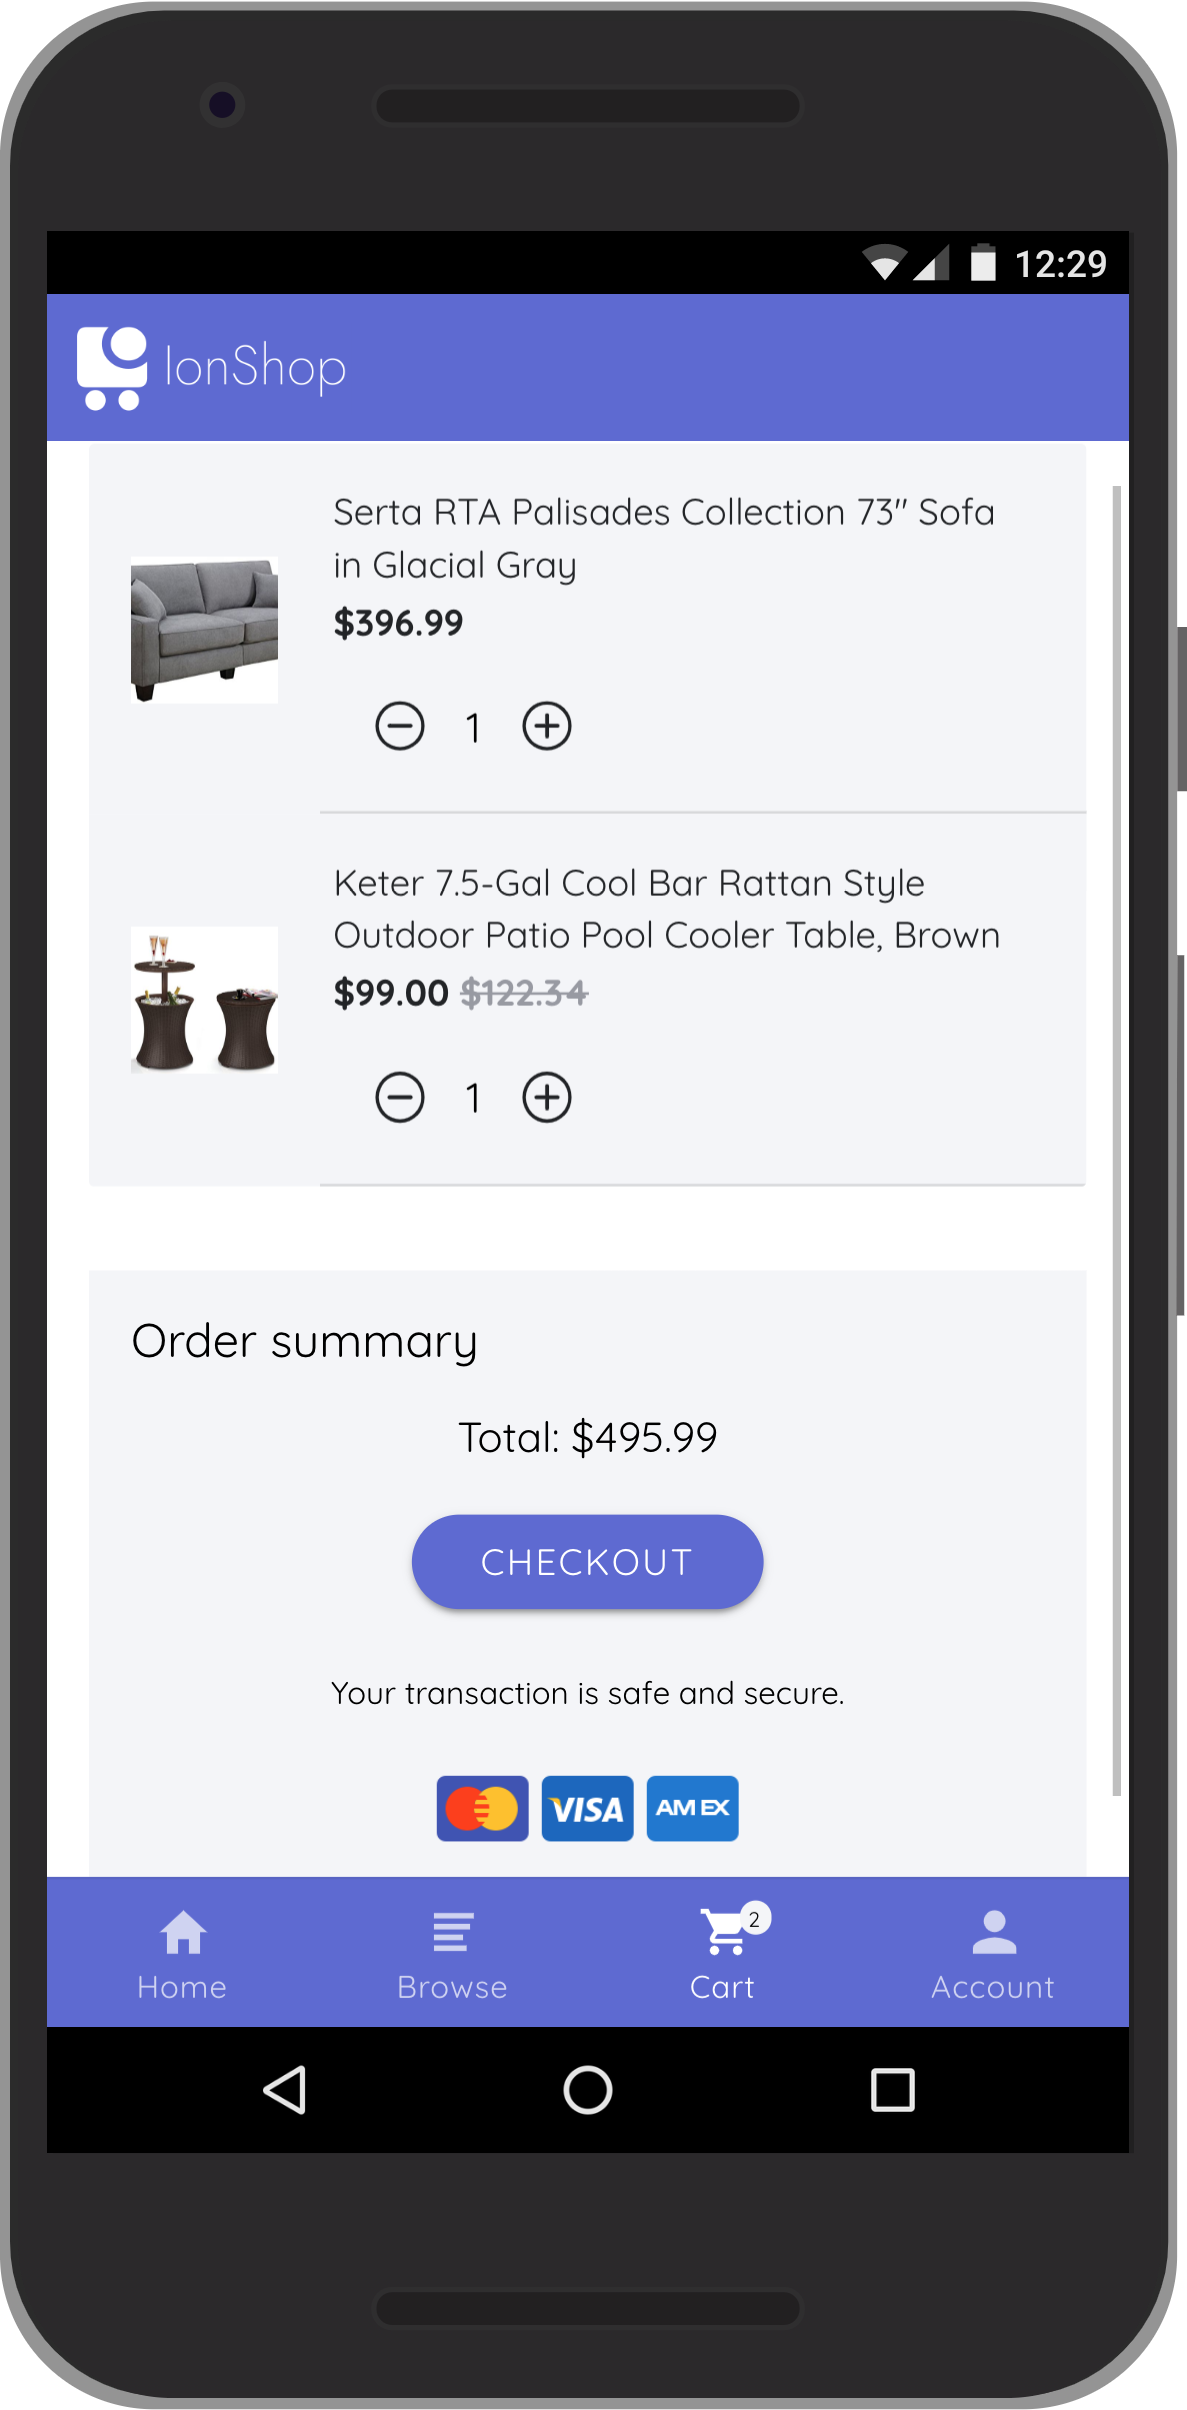 IonShop 2 - Ionic 4 Template + Admin Portal for e-commerce based apps